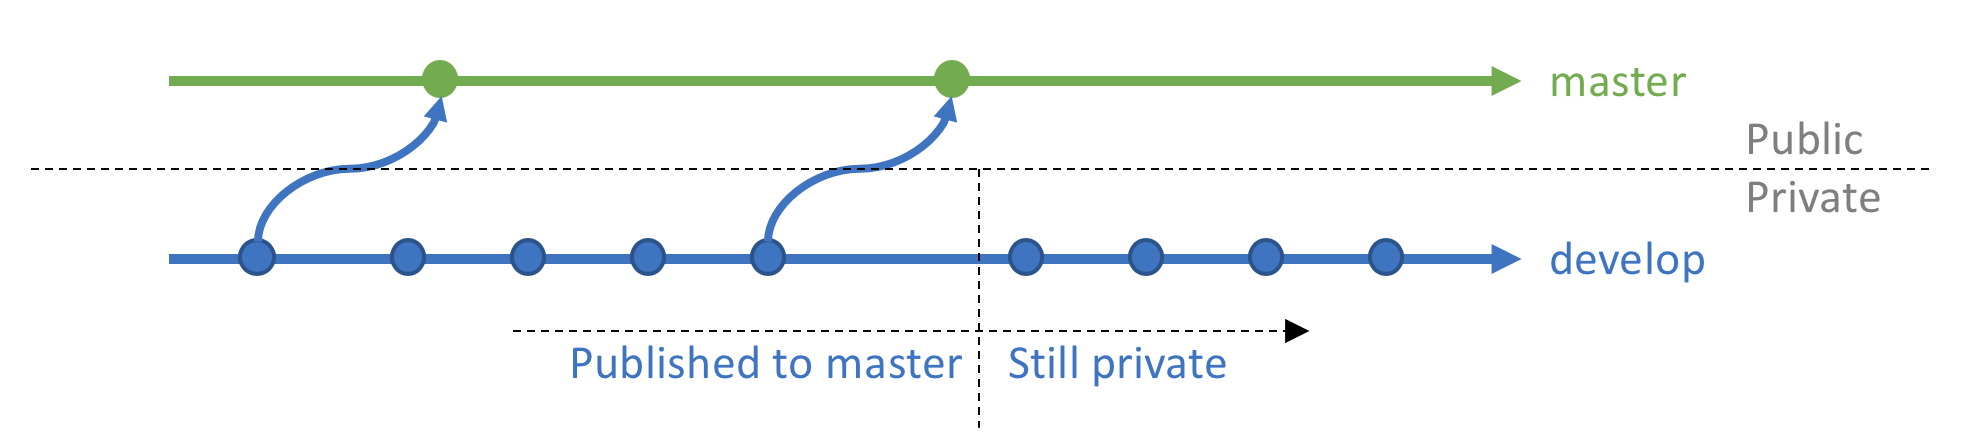 Public master Branch and Private develop Branch